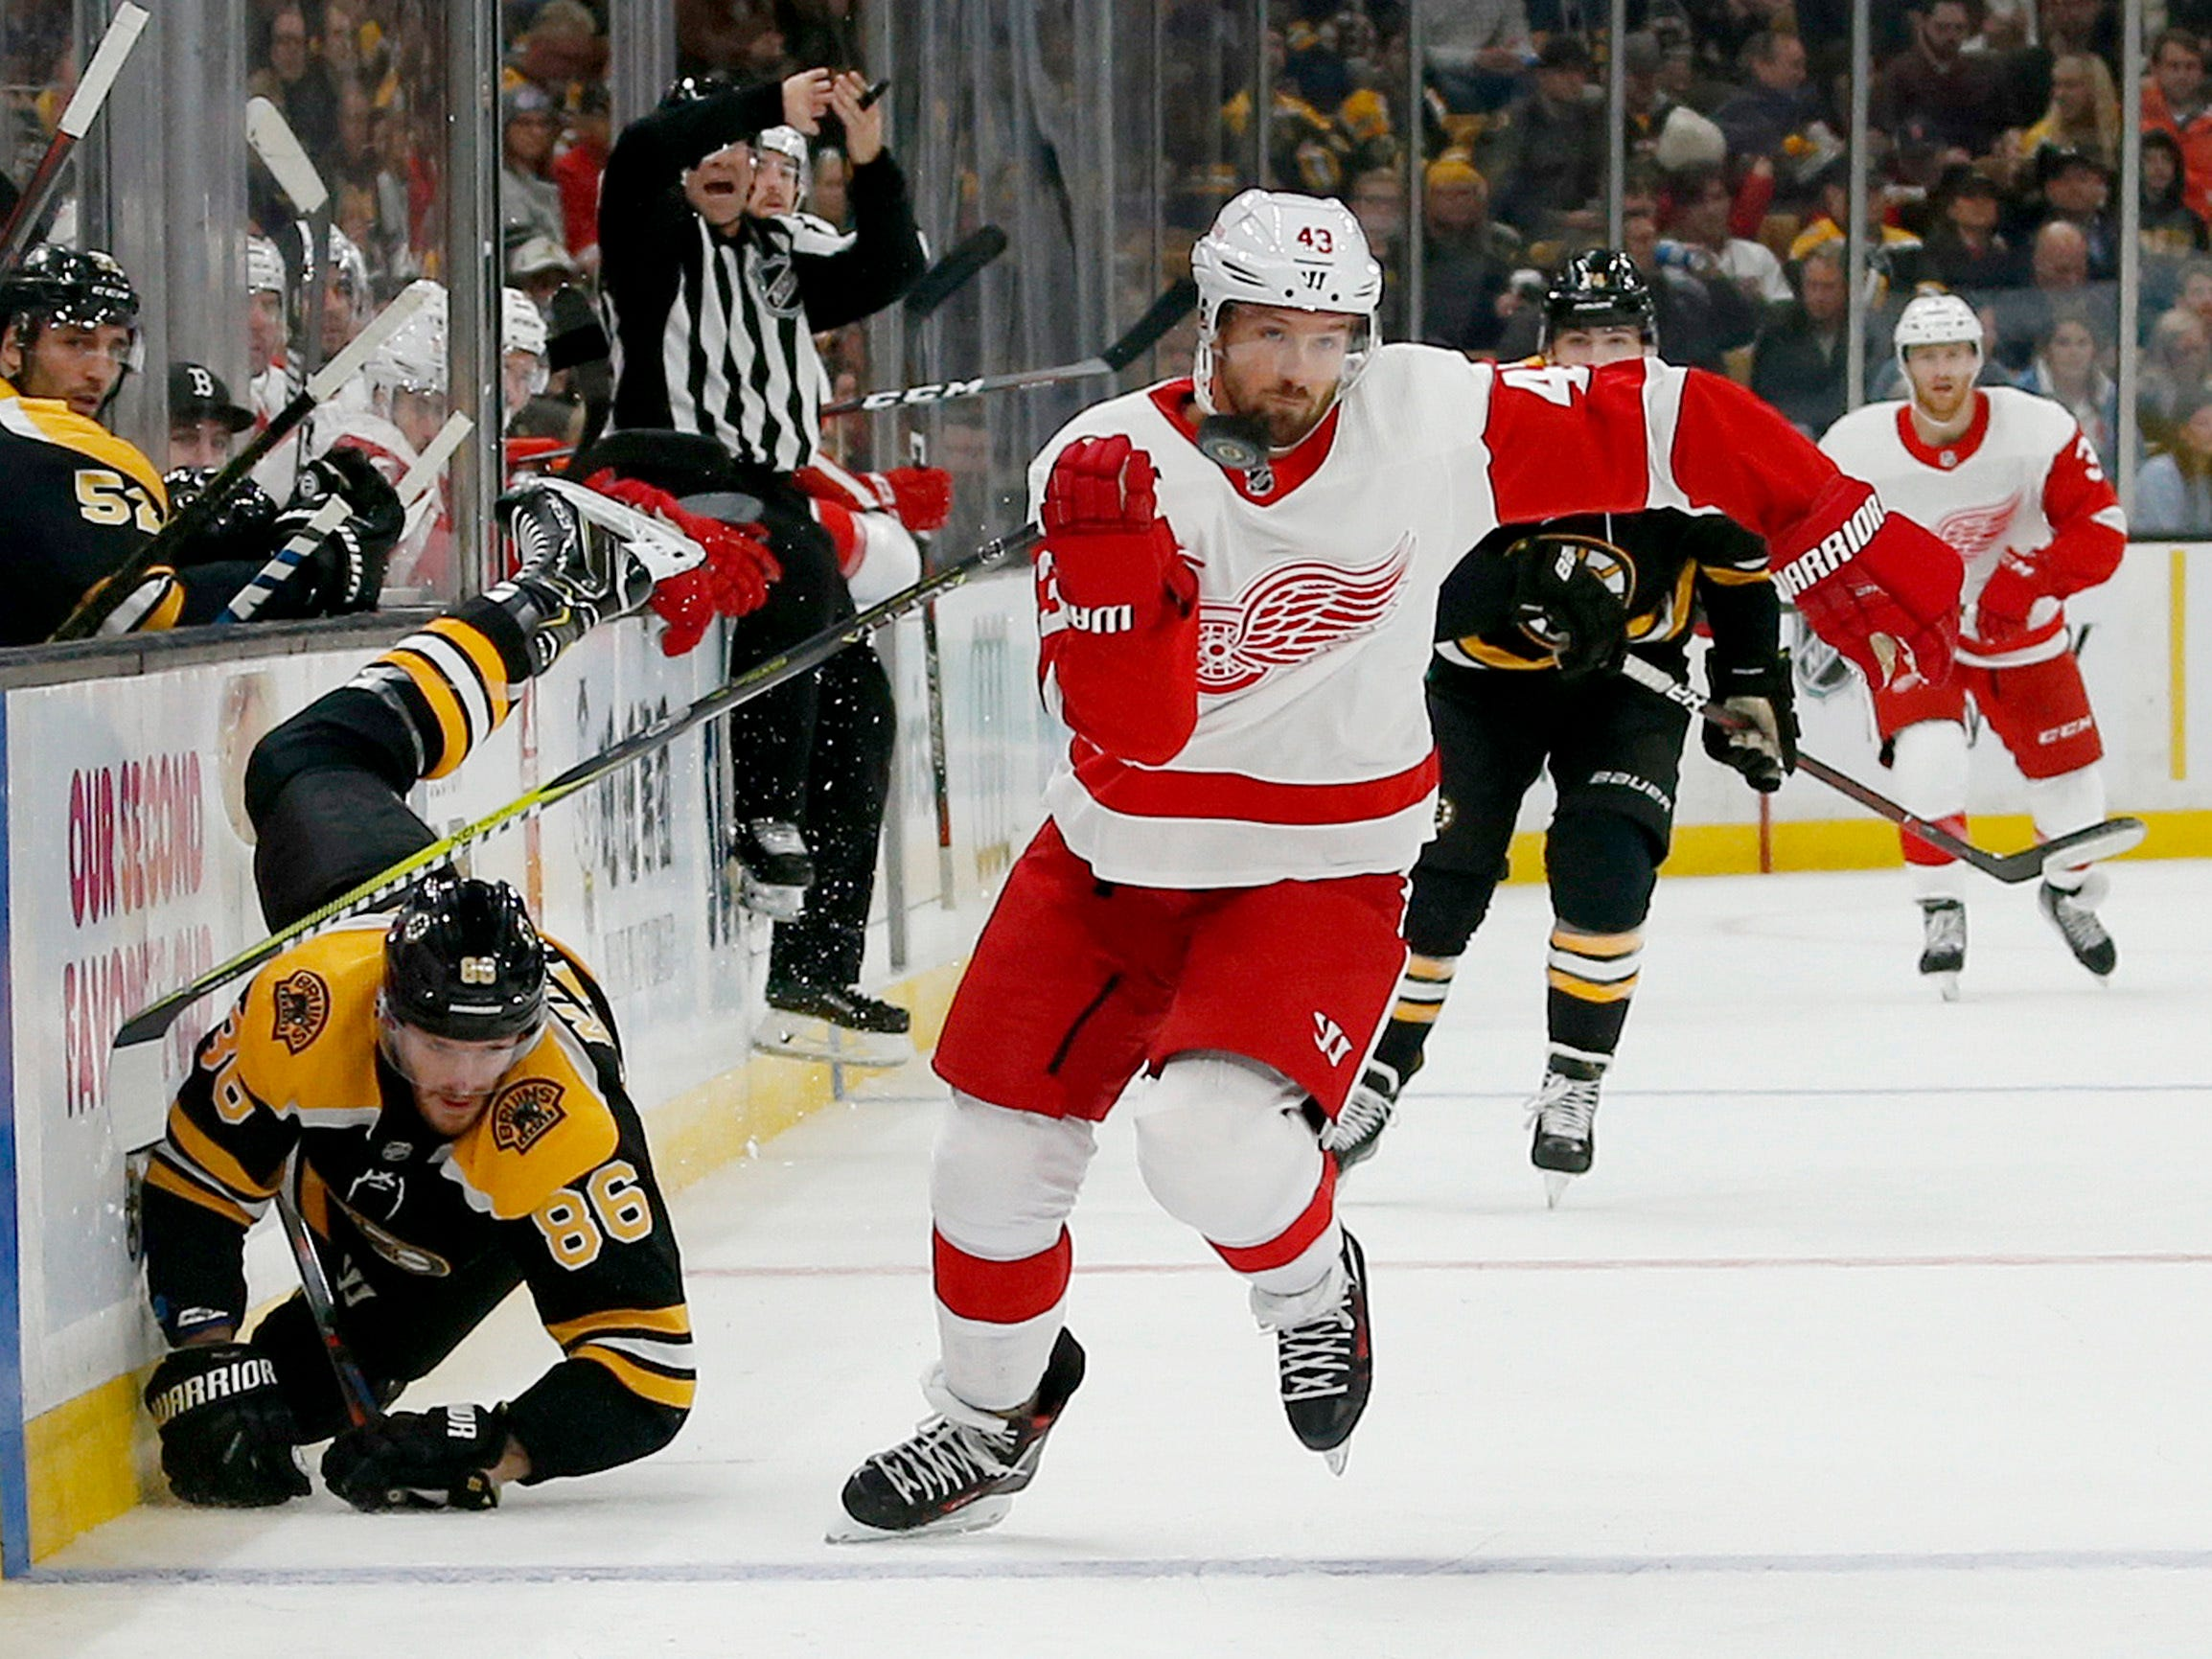 Detroit Red Wings left wing Darren Helm (43) keeps an eye on the puck as Boston Bruins defenseman Kevan Miller (86) falls to the ice during the first period.